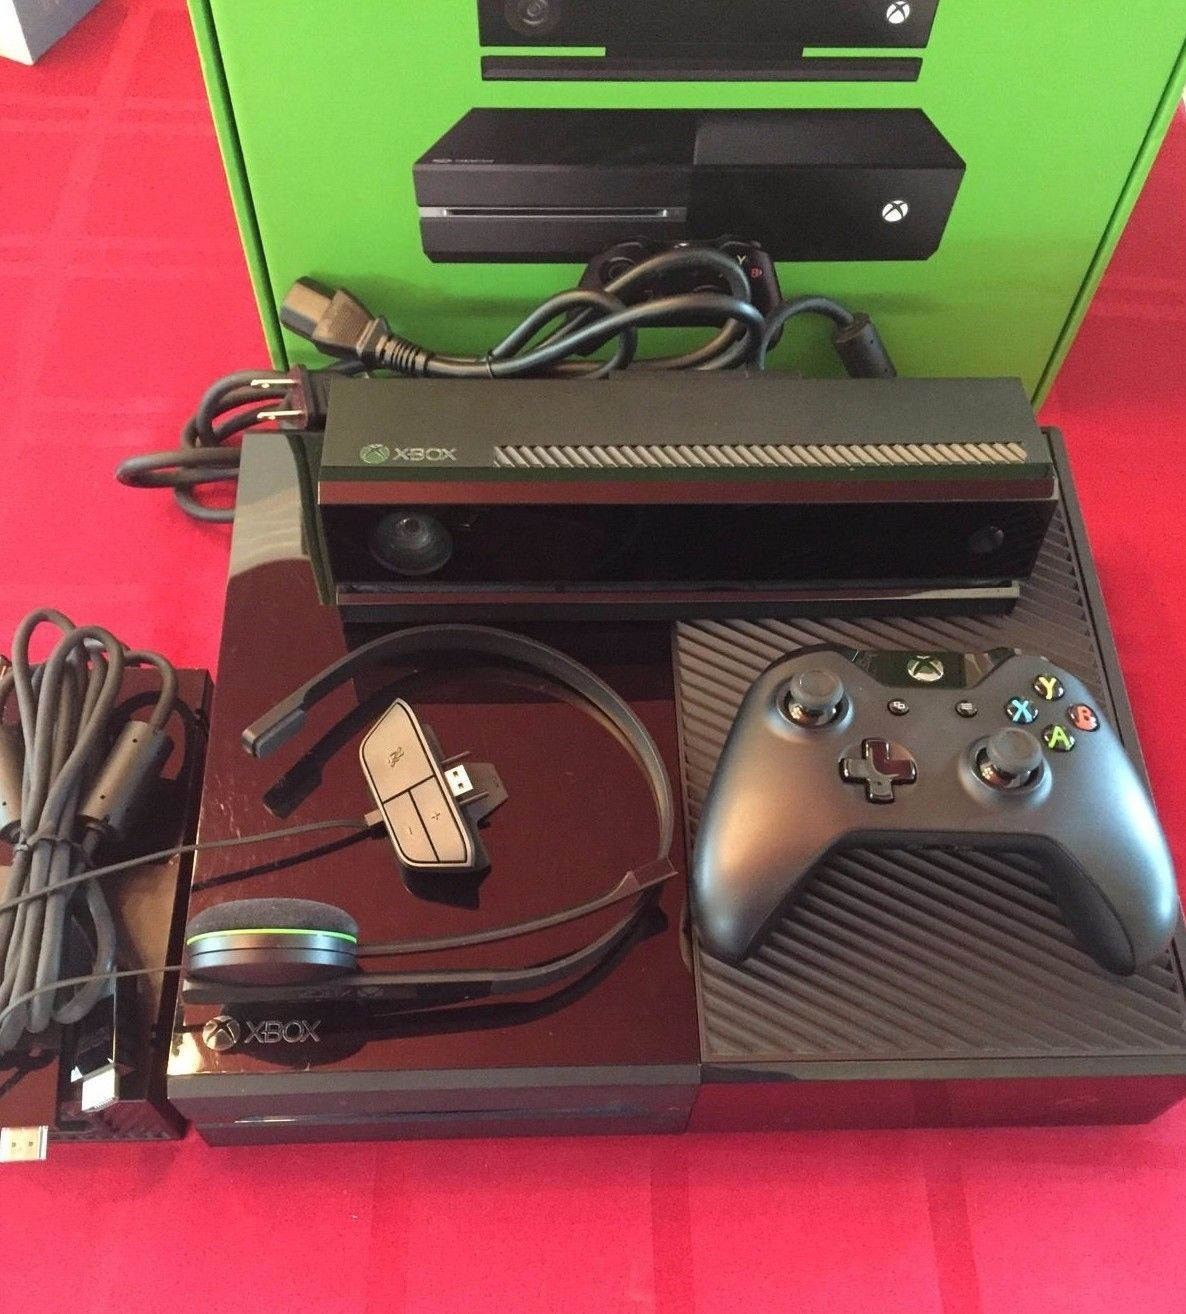 Microsoft XBOX ONE w/ Kinect - 500 GB - ADULE OWNED - MINT CONDITION - FREE SHIP https://t.co/e2qmGgPUjw https://t.co/h3FXKTVsv2